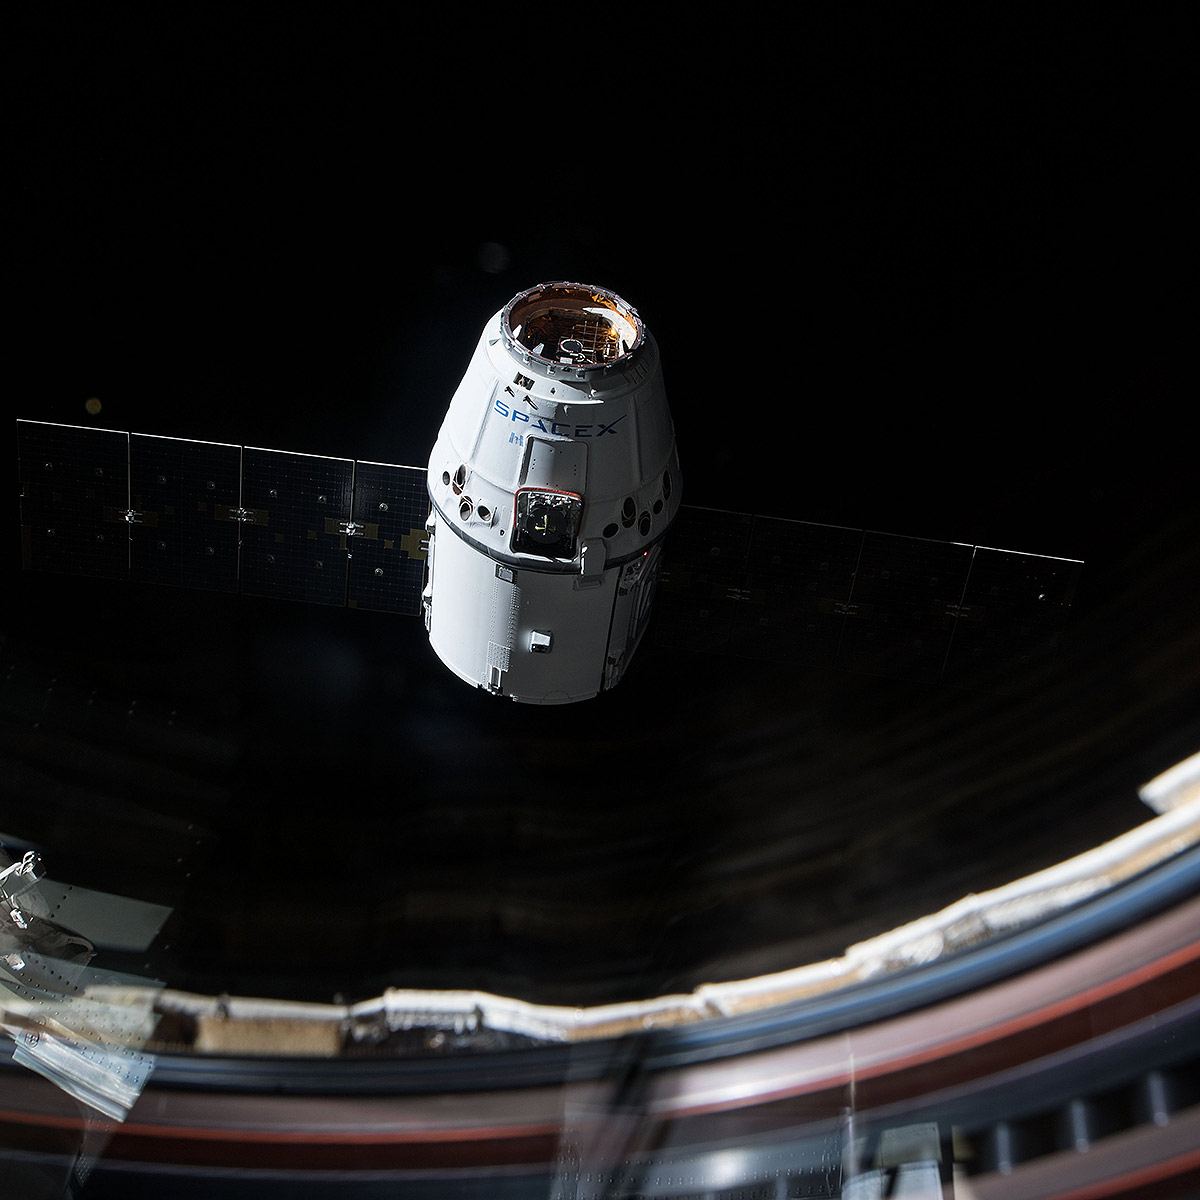 dragon crs13 approaches station